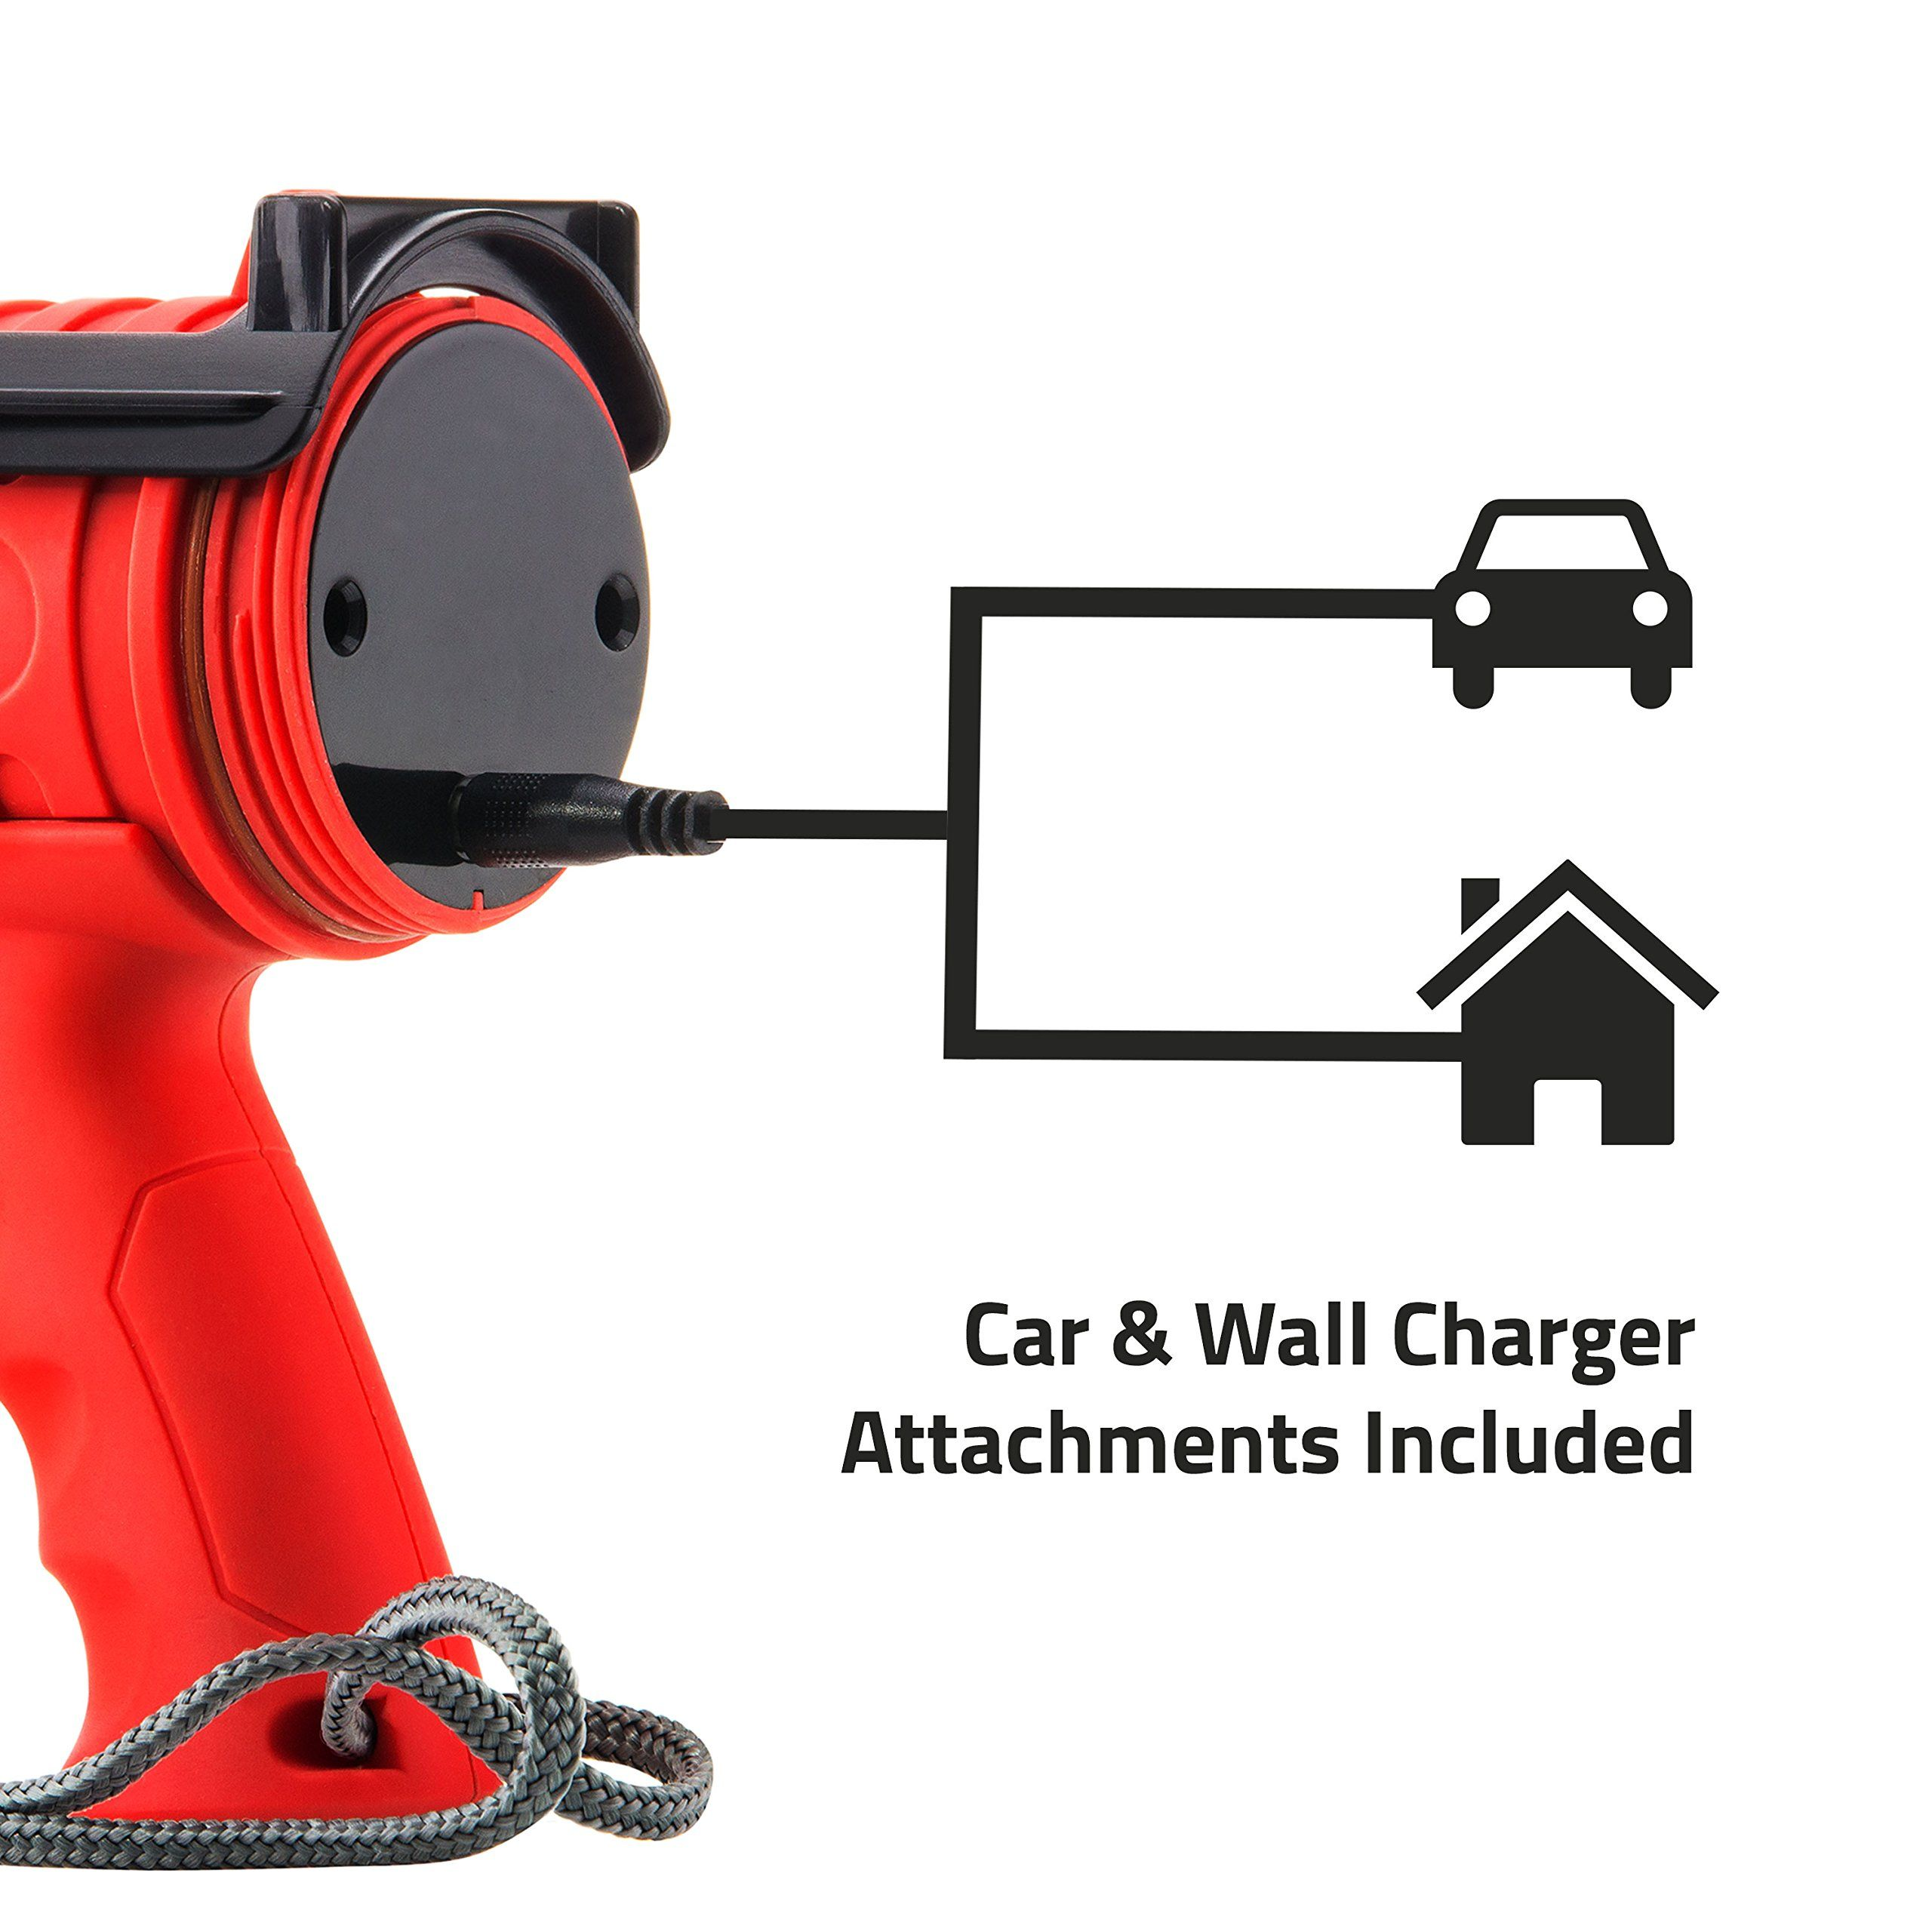 Spotlight Detachable Red Light Filter NoCry 18W Waterproof Rechargeable Flashlight with 1000 Lumen LED Wall and Car Charger Attachments